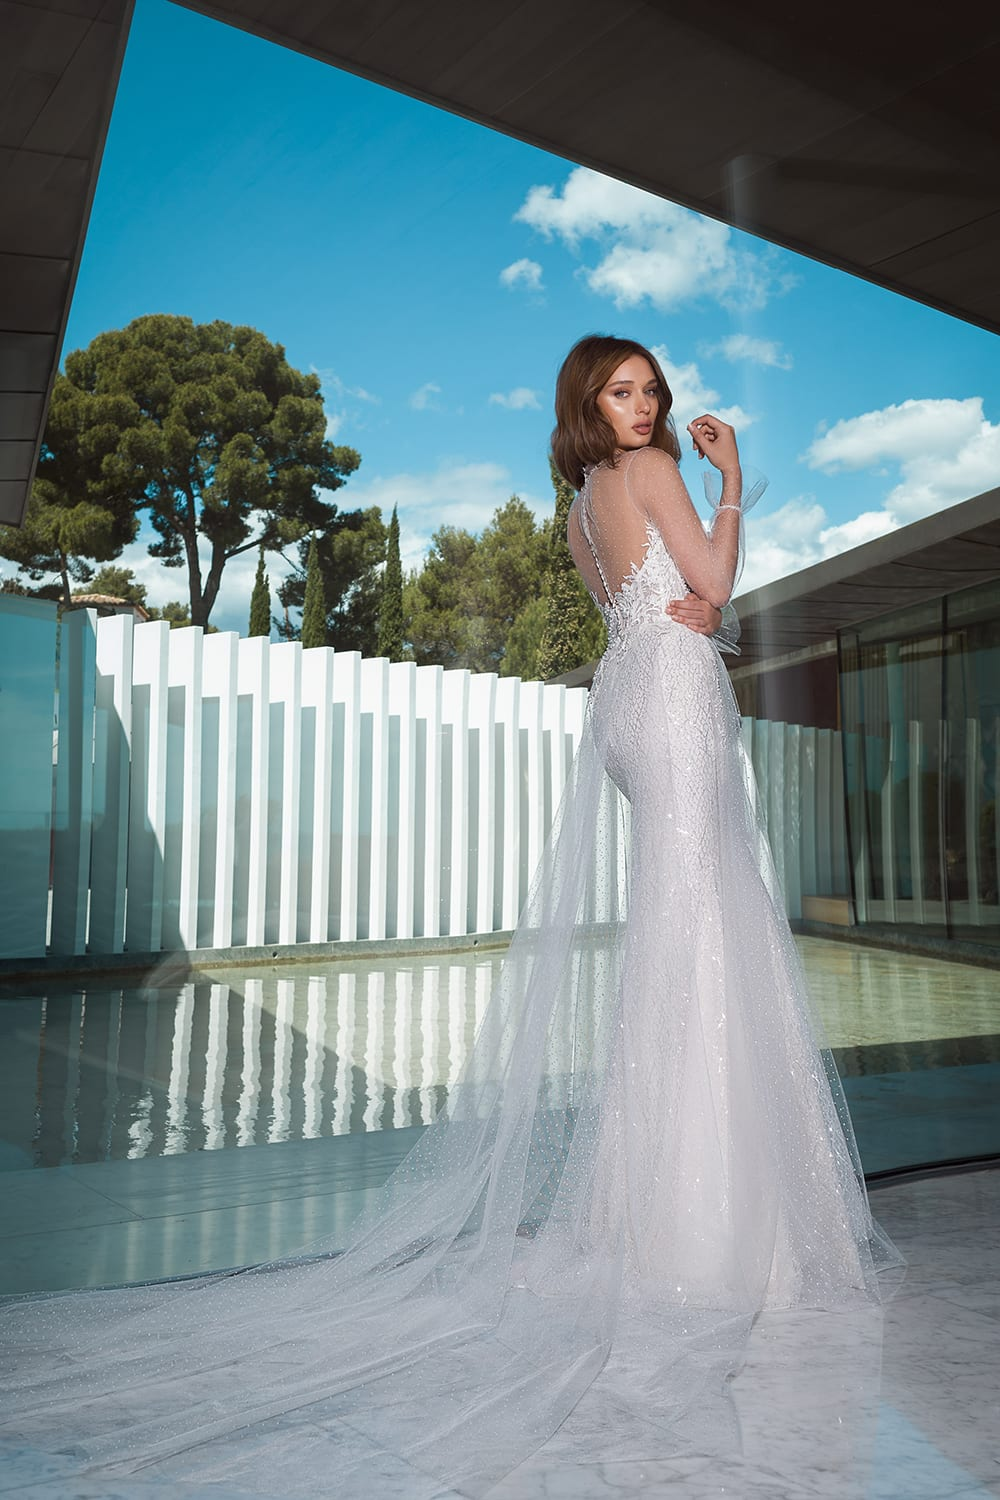 Cool Wedding Outfit Ideas